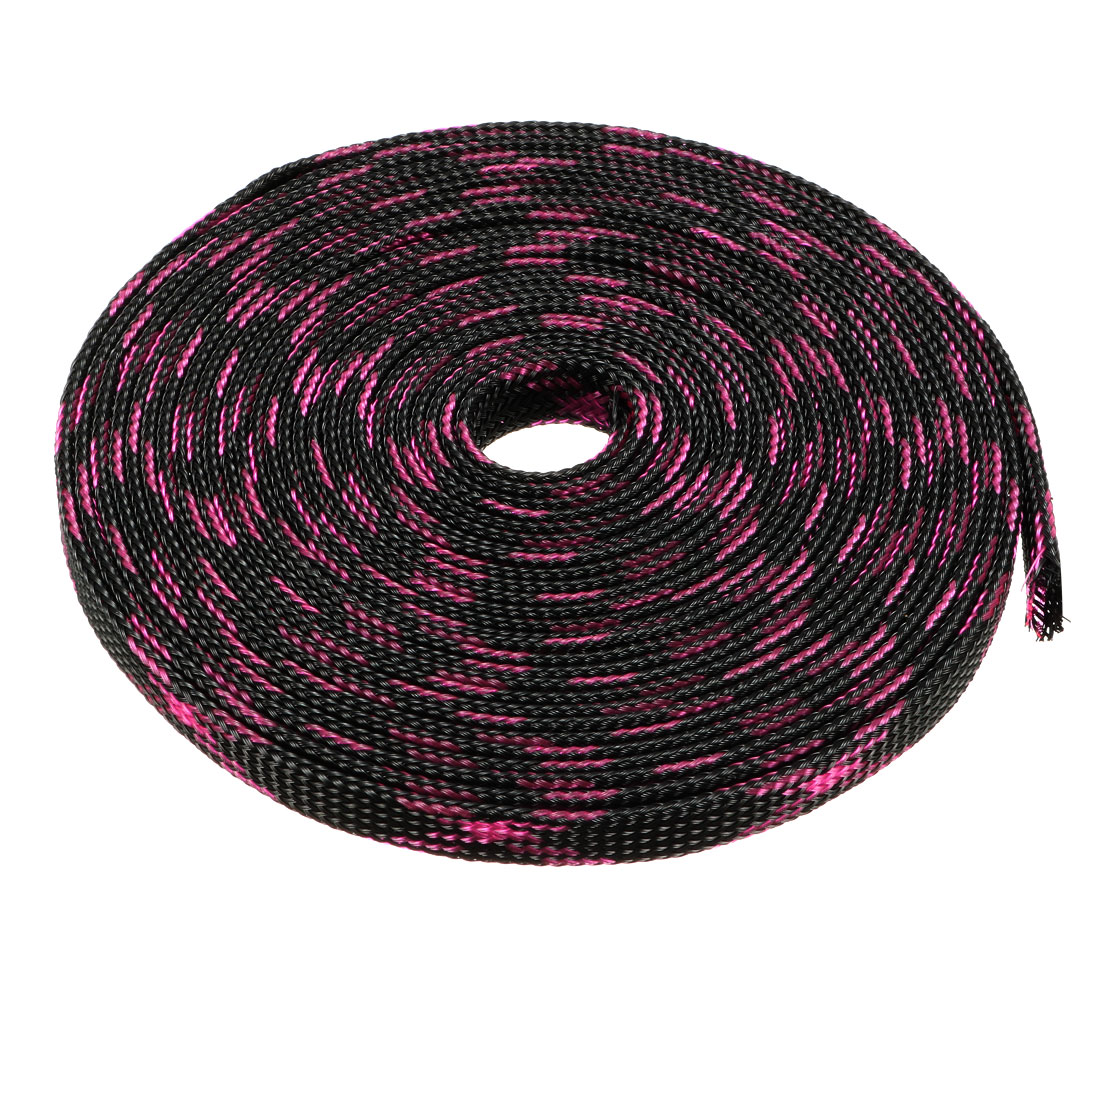 PET Braided Sleeving 32.8 Feet 10m Expandable Cable Wrap 4mm Diameter Wire Sheath Black,Pink